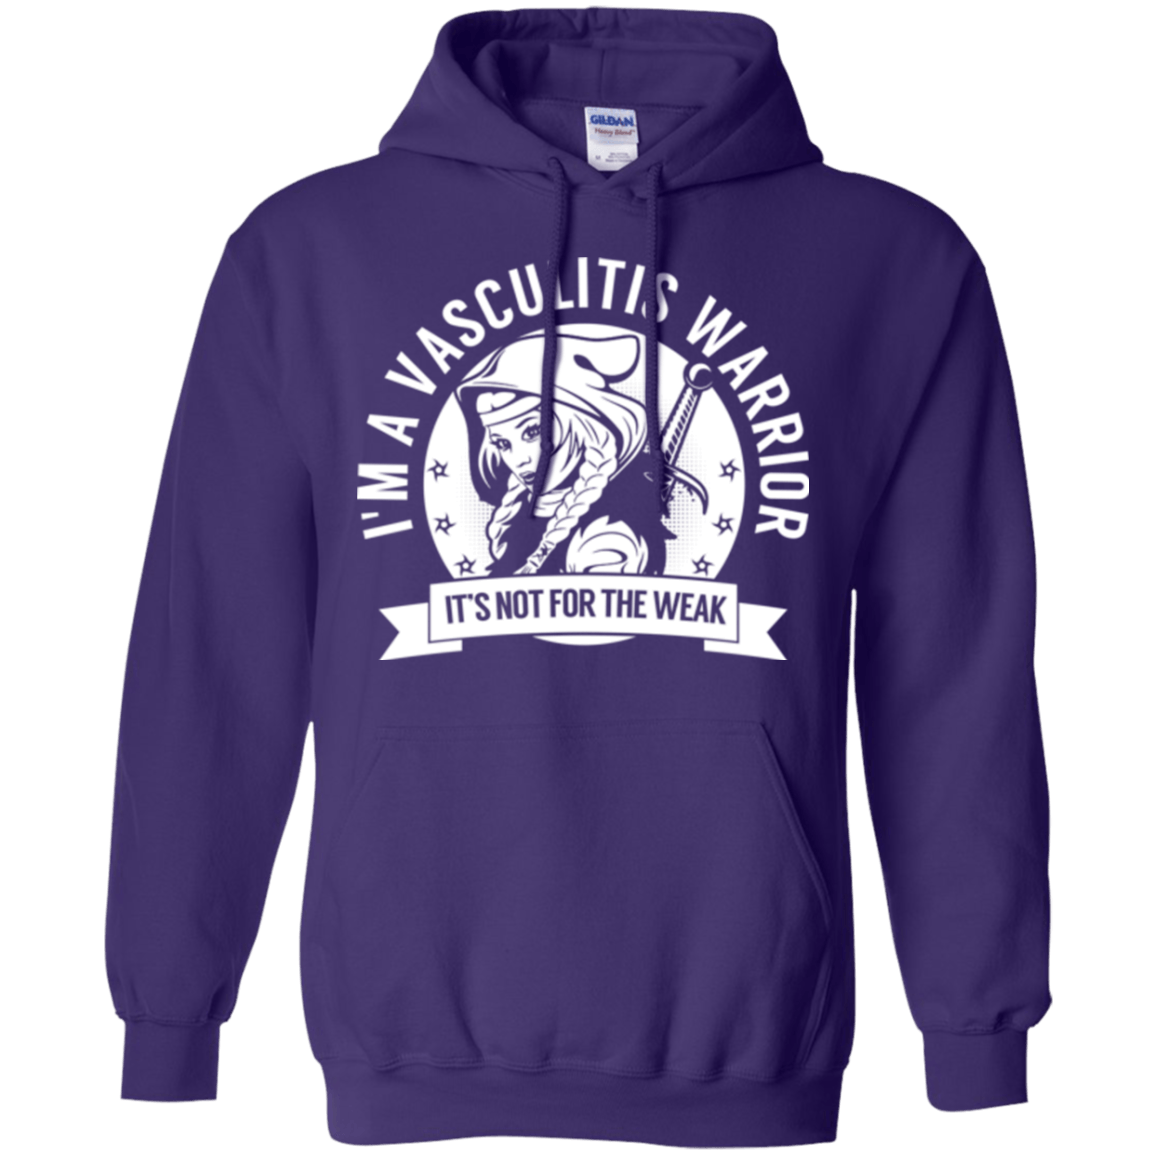 Sweatshirts - Vasculitis Warrior Hooded Pullover Hoodie 8 Oz.